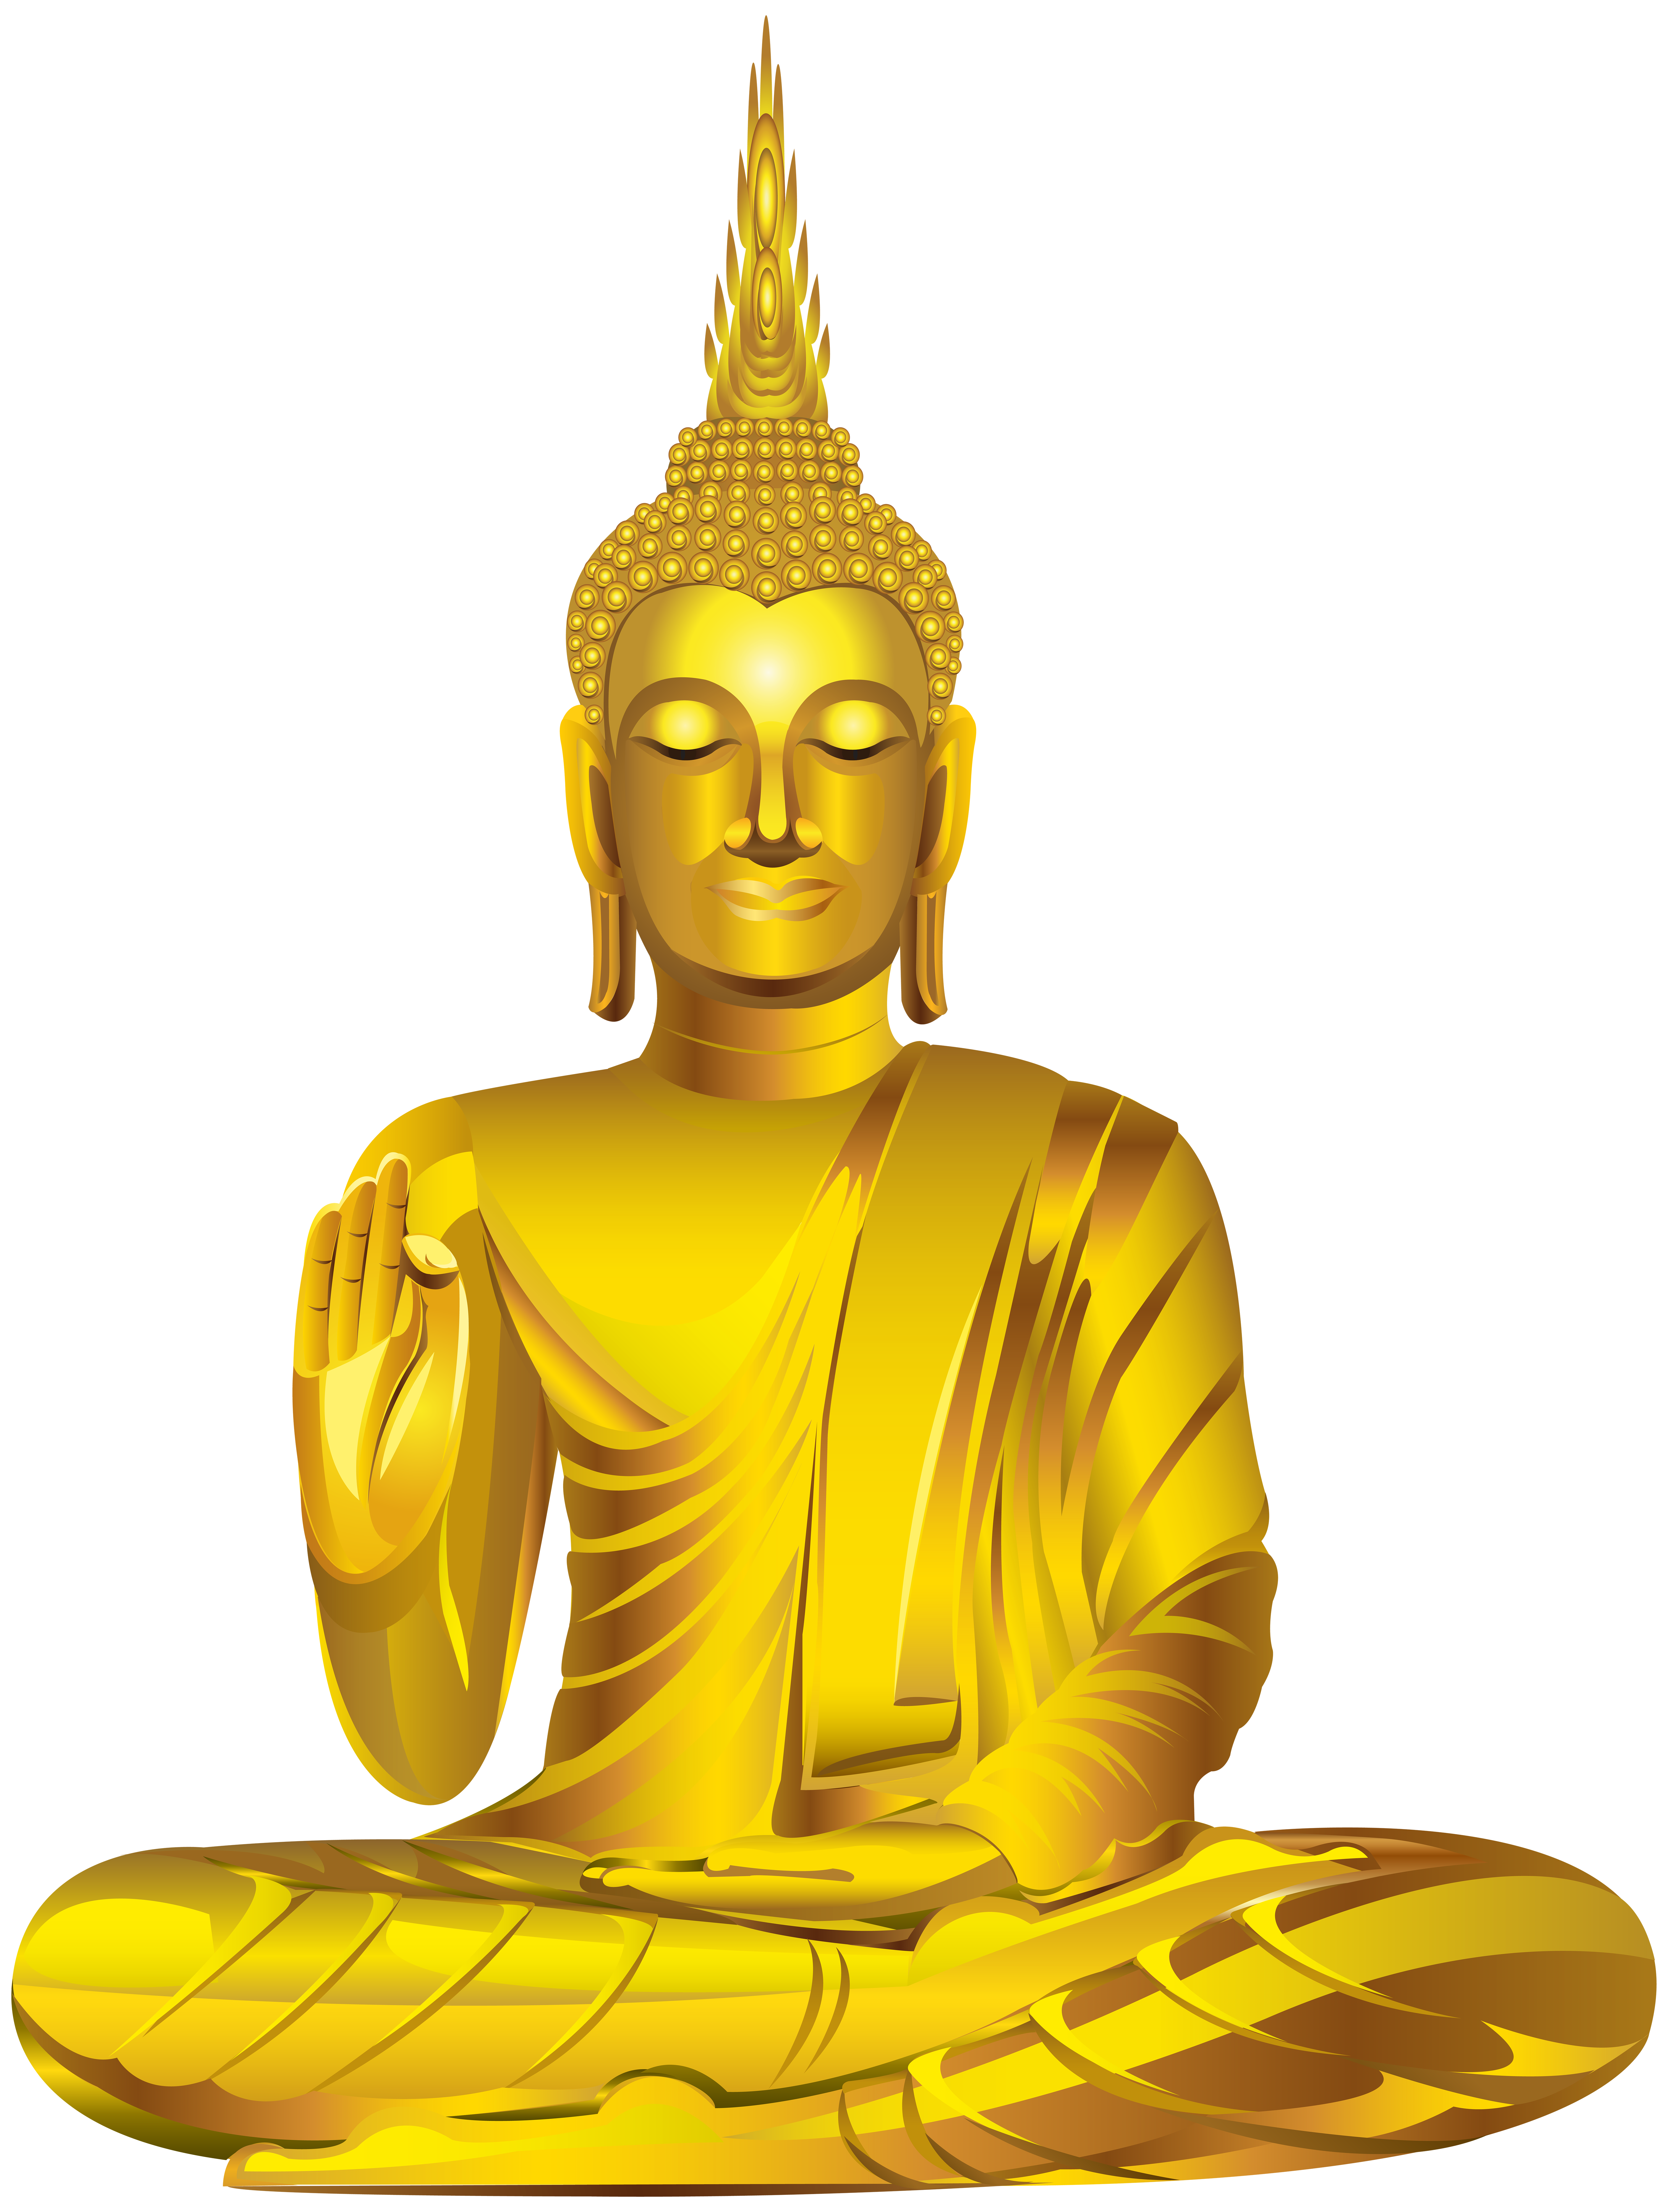 Gold statue png clip. Buddha clipart lao png royalty free stock